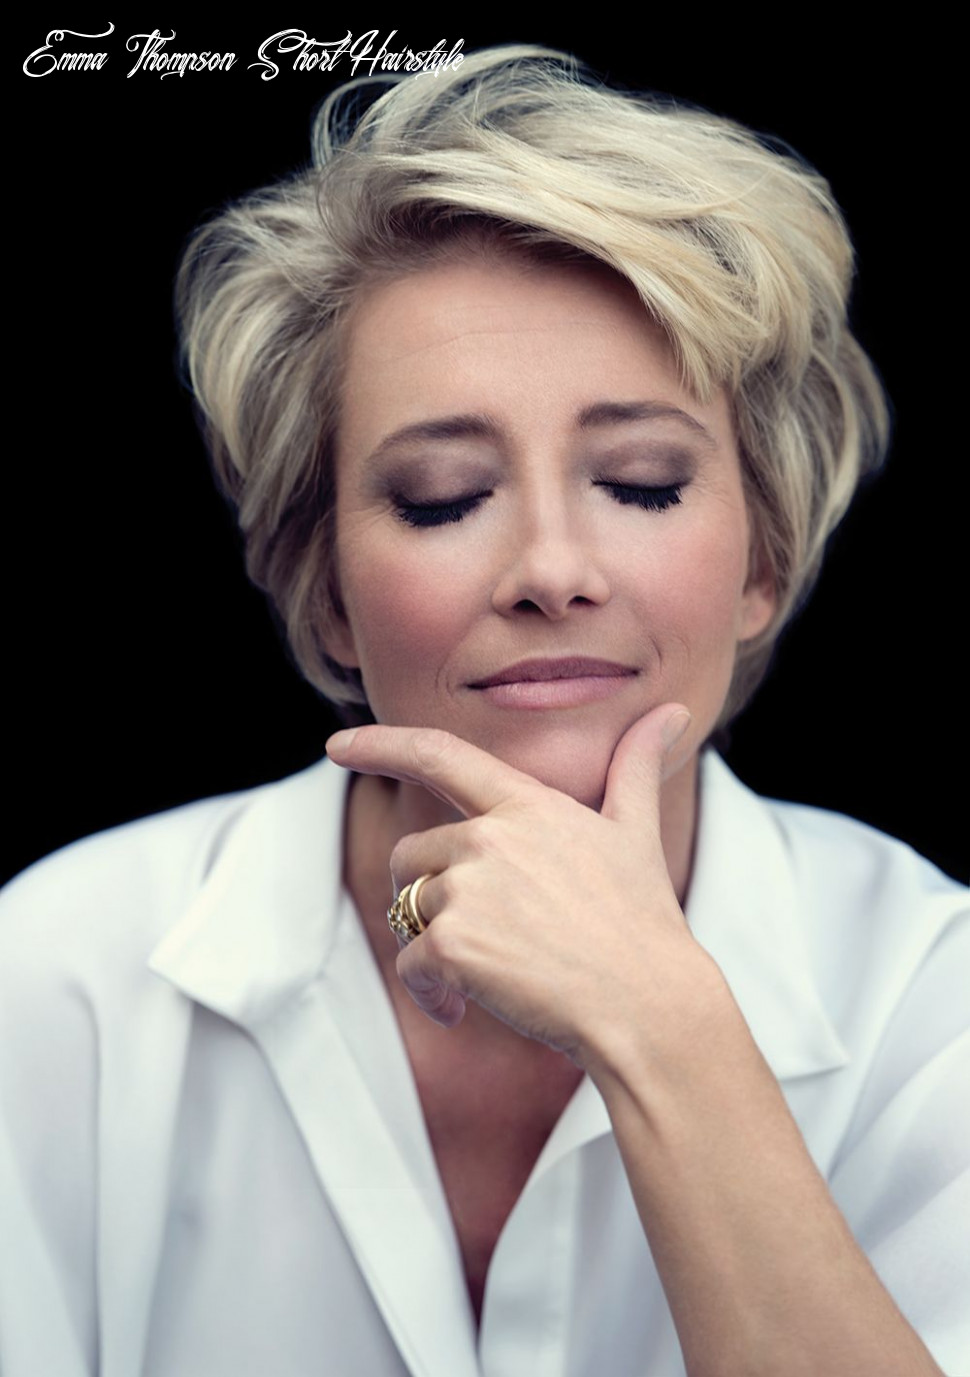 Emma thompson | modern short hairstyles, haircut for older women